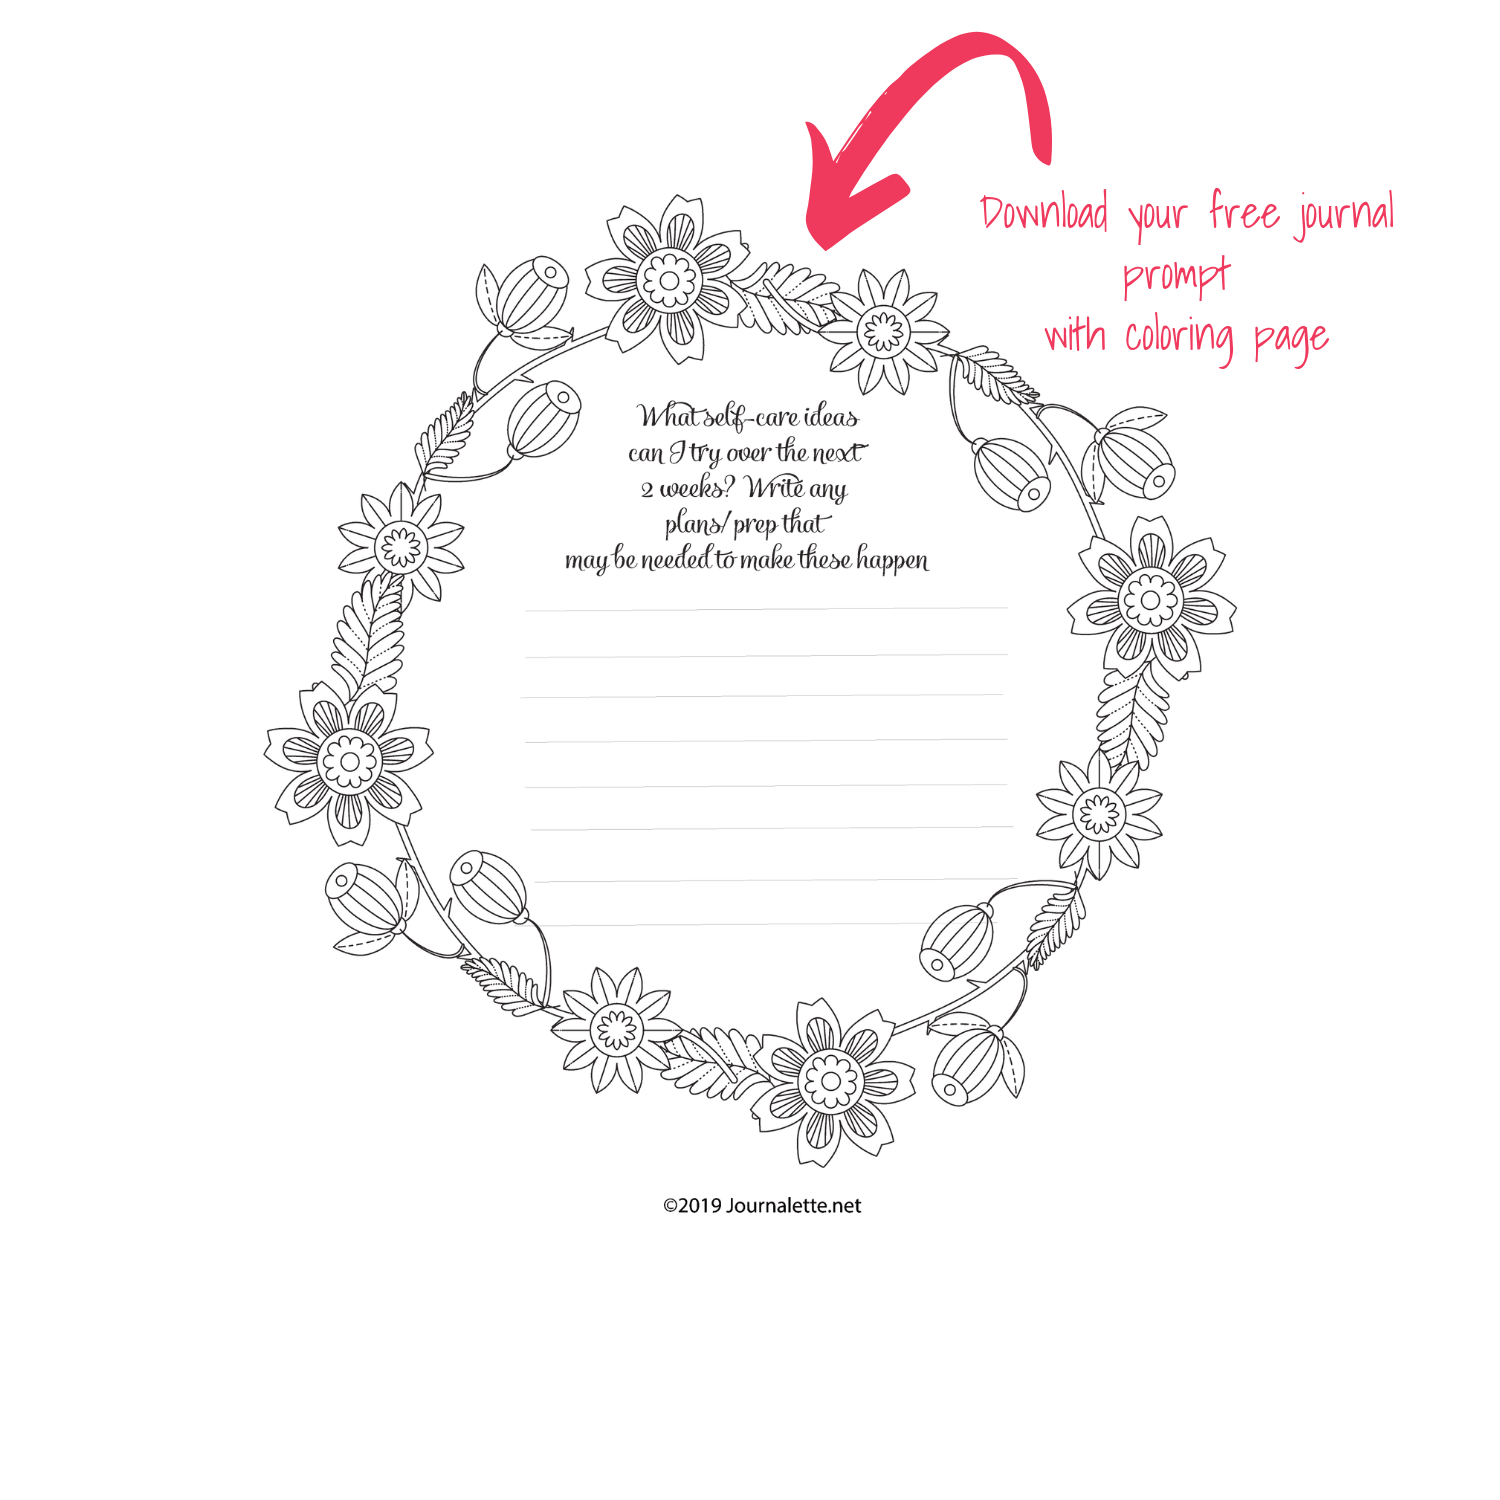 image of printable self care strategies journal prompt coloring page